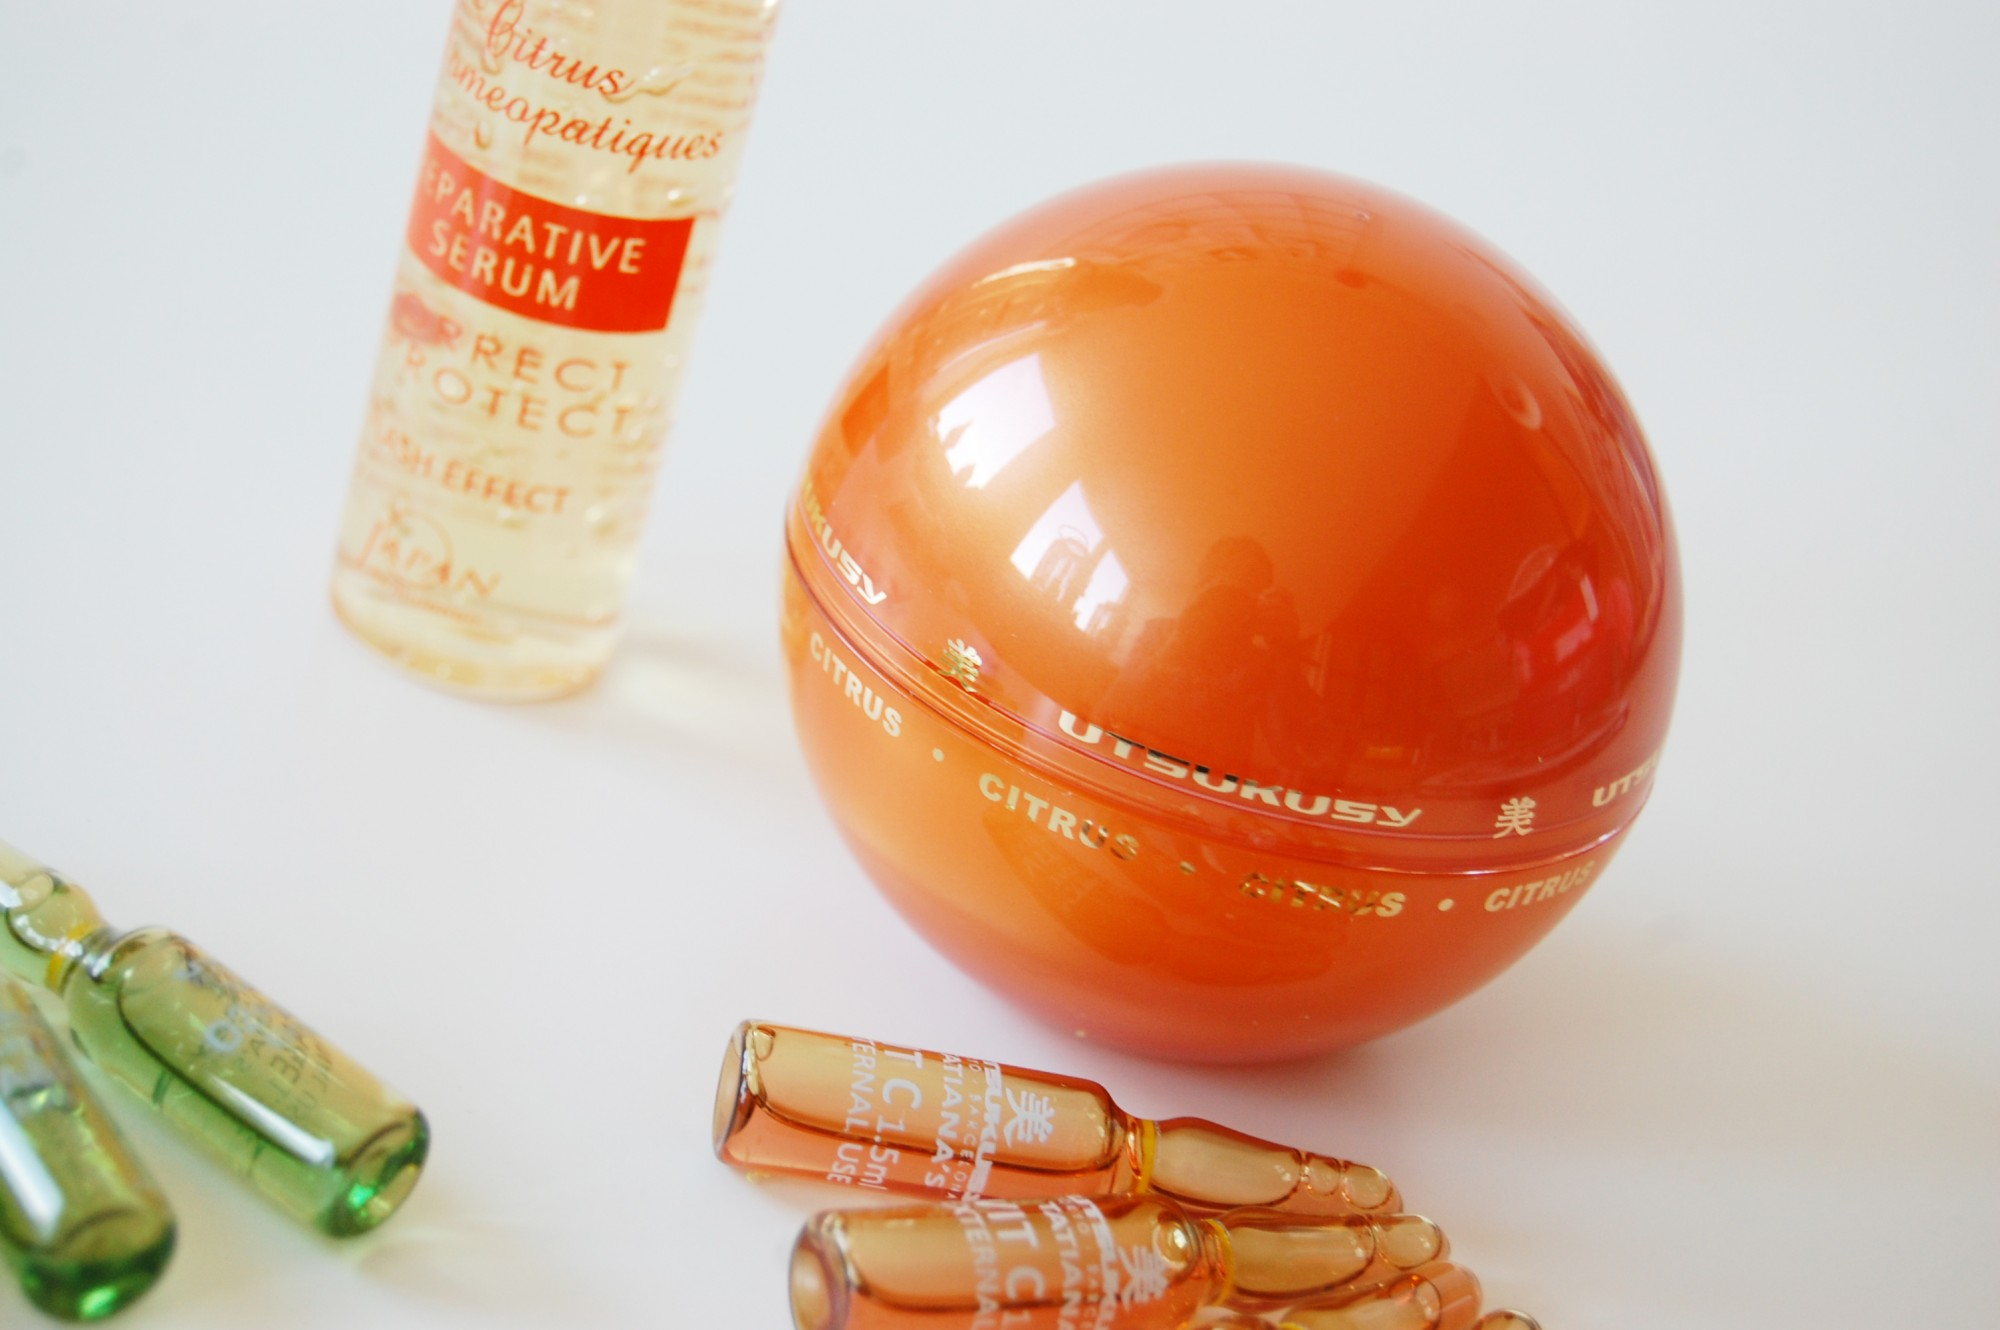 Utsukusy Citrus Homeopathiques beauty box